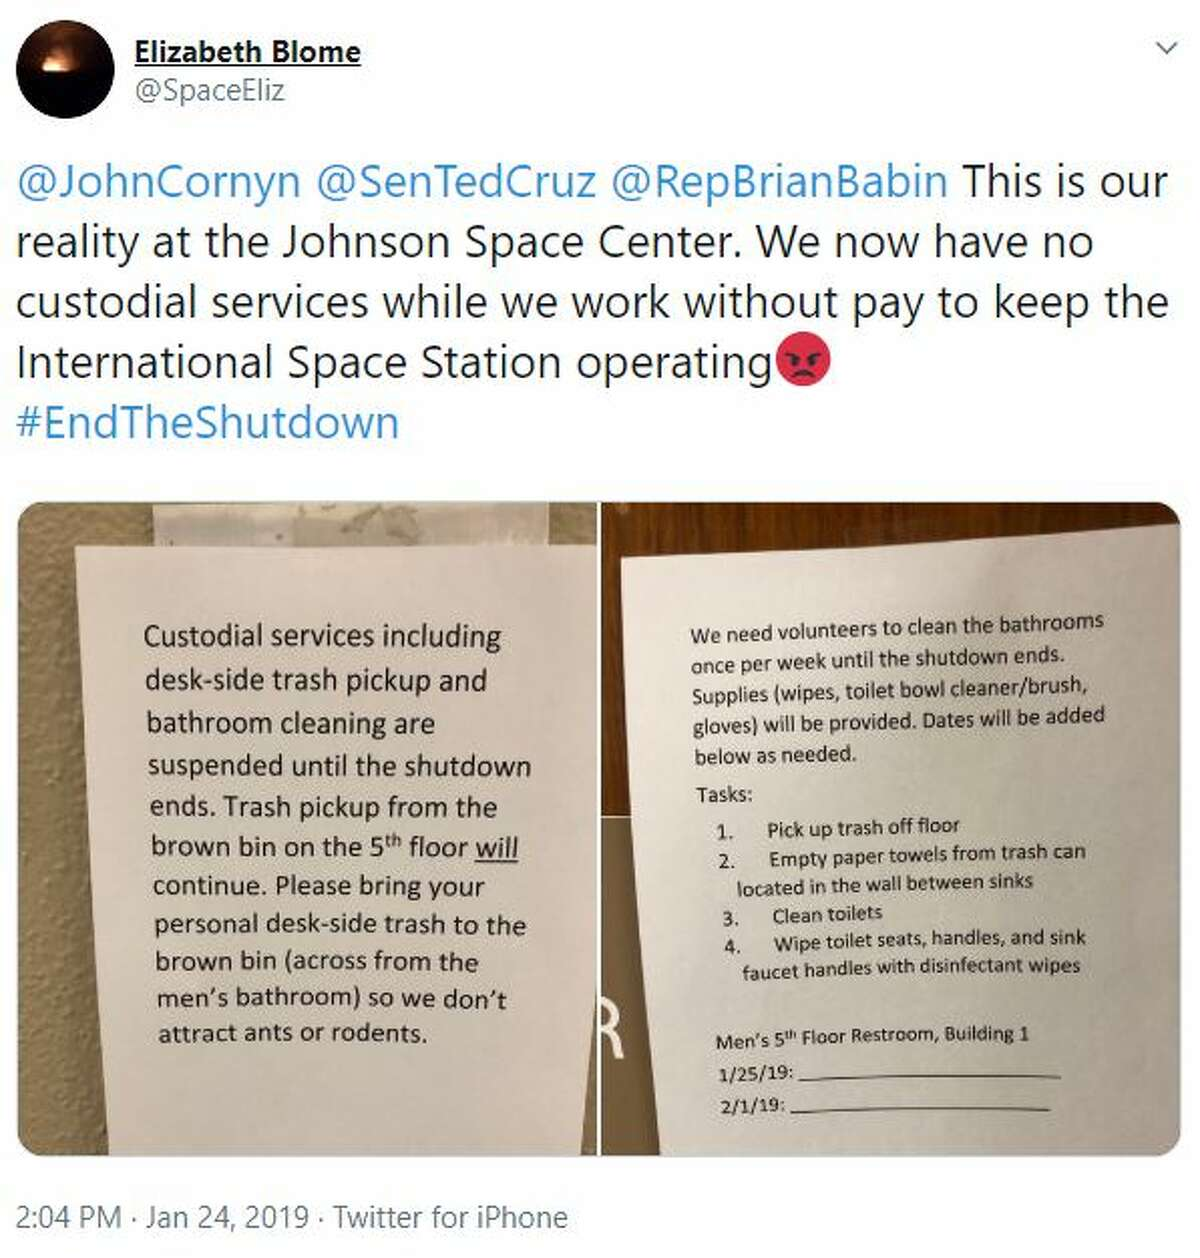 """""""This is our reality at the Johnson Space Center. We now have no custodial services while we work without pay to keep the International Space Station operating #EndTheShutdown"""""""